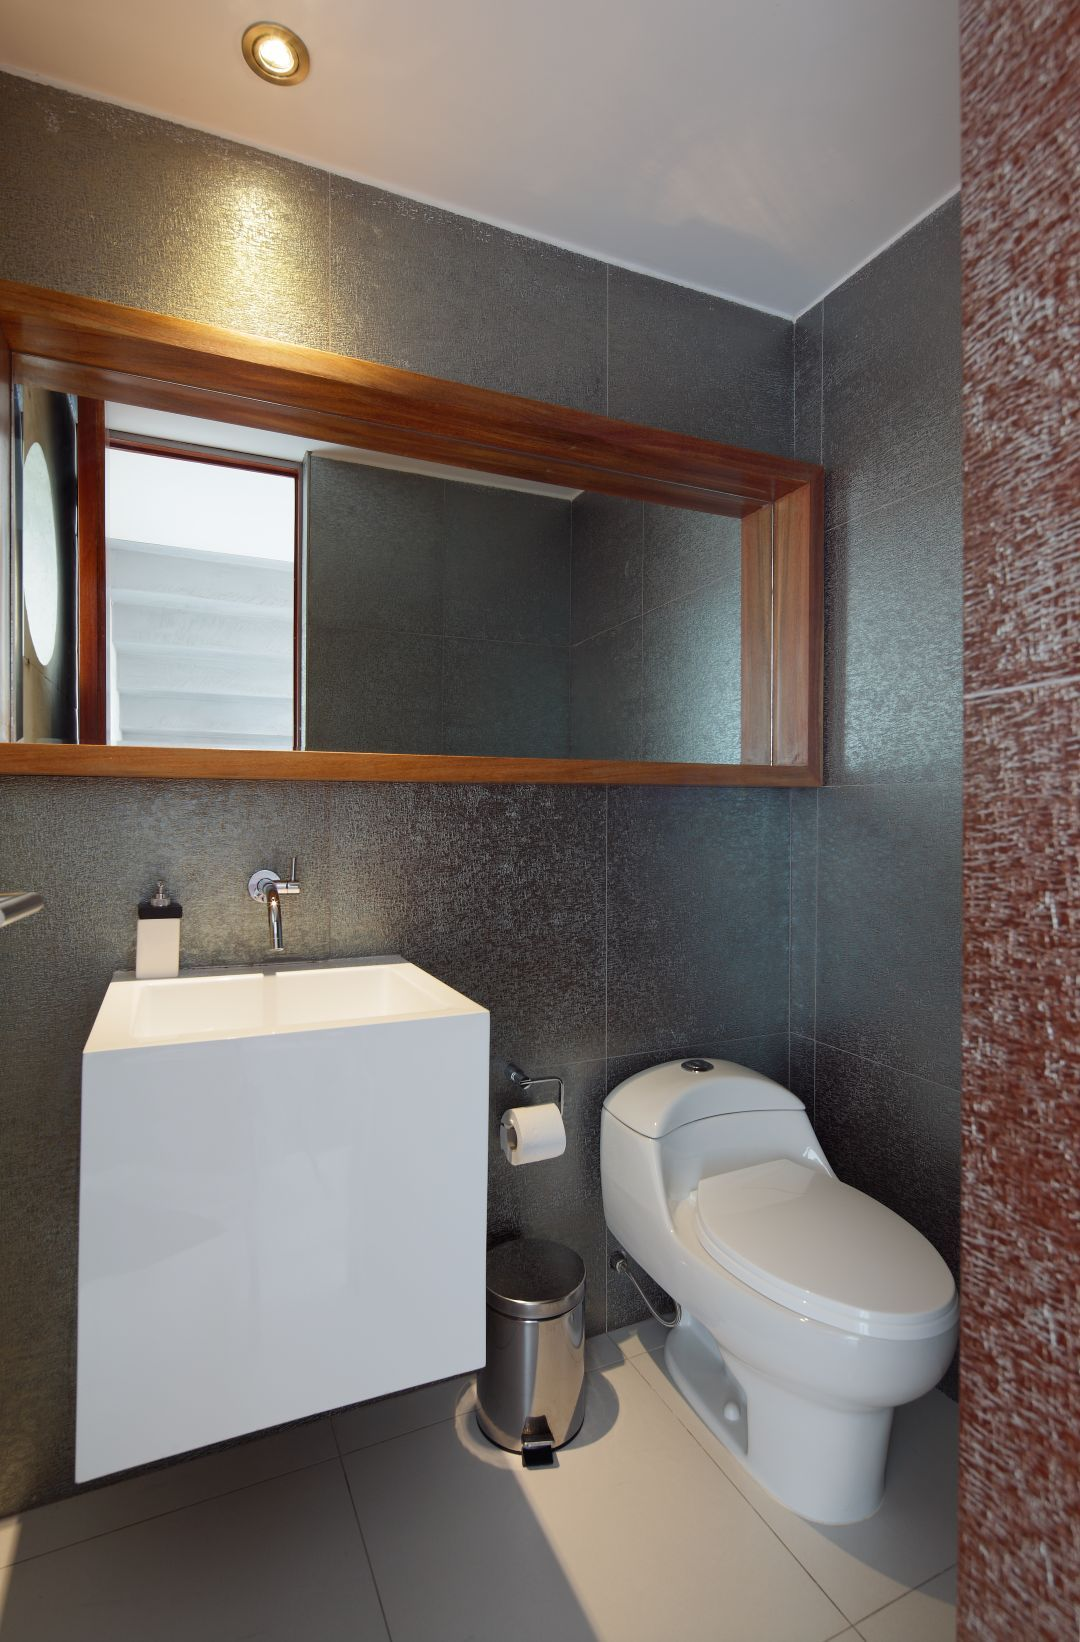 Bathroom, Dazzling Wall Mount Toilet Tank Decorating With Adorable ...